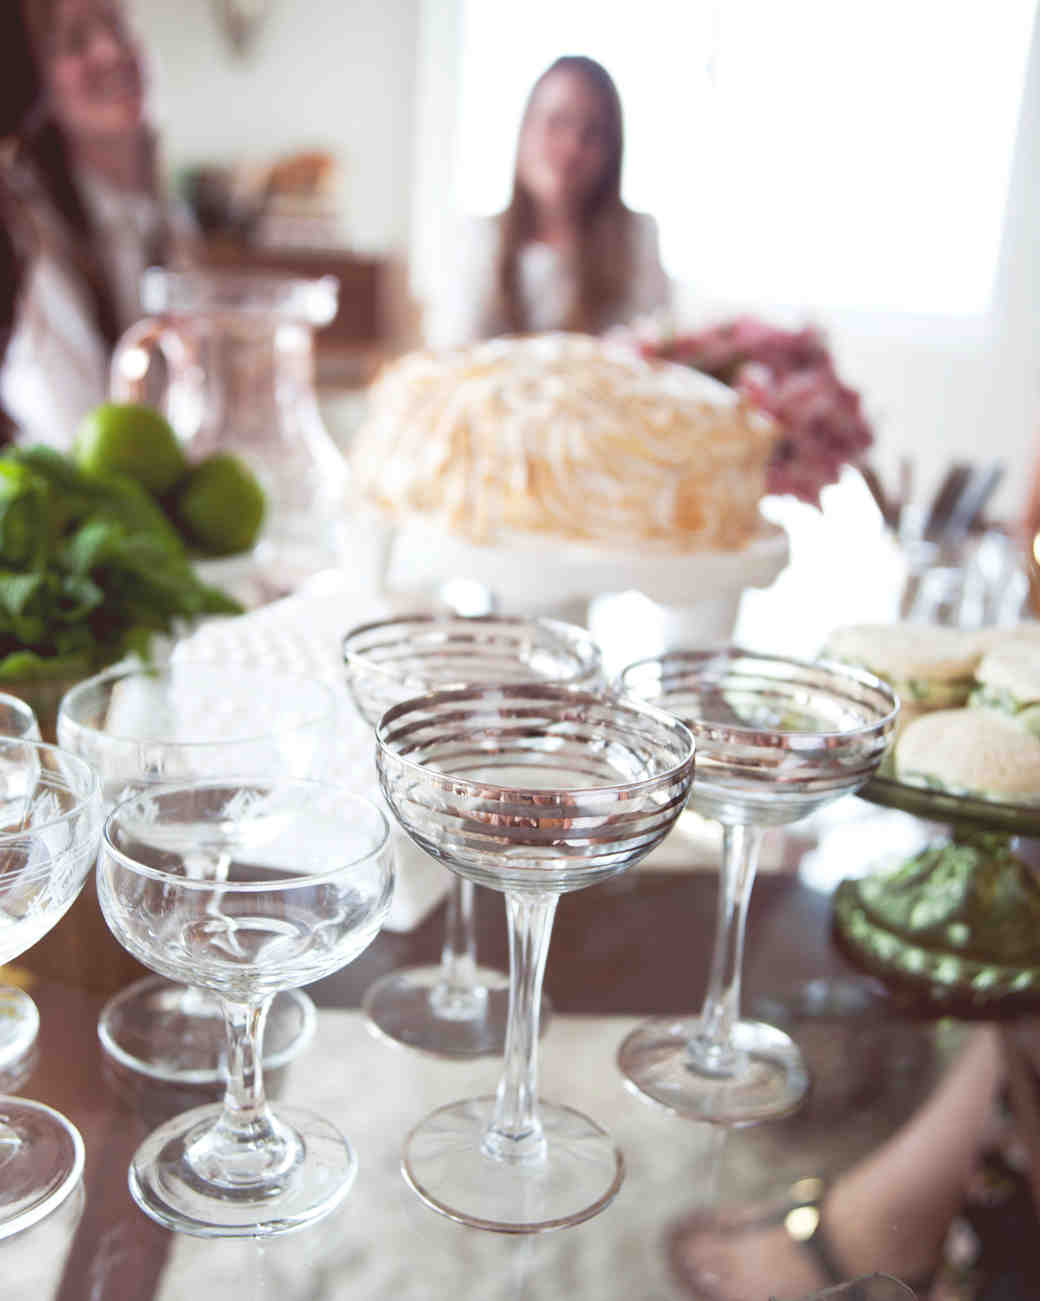 claire-thomas-bridal-shower-vintage-glasses-table-0814.jpg